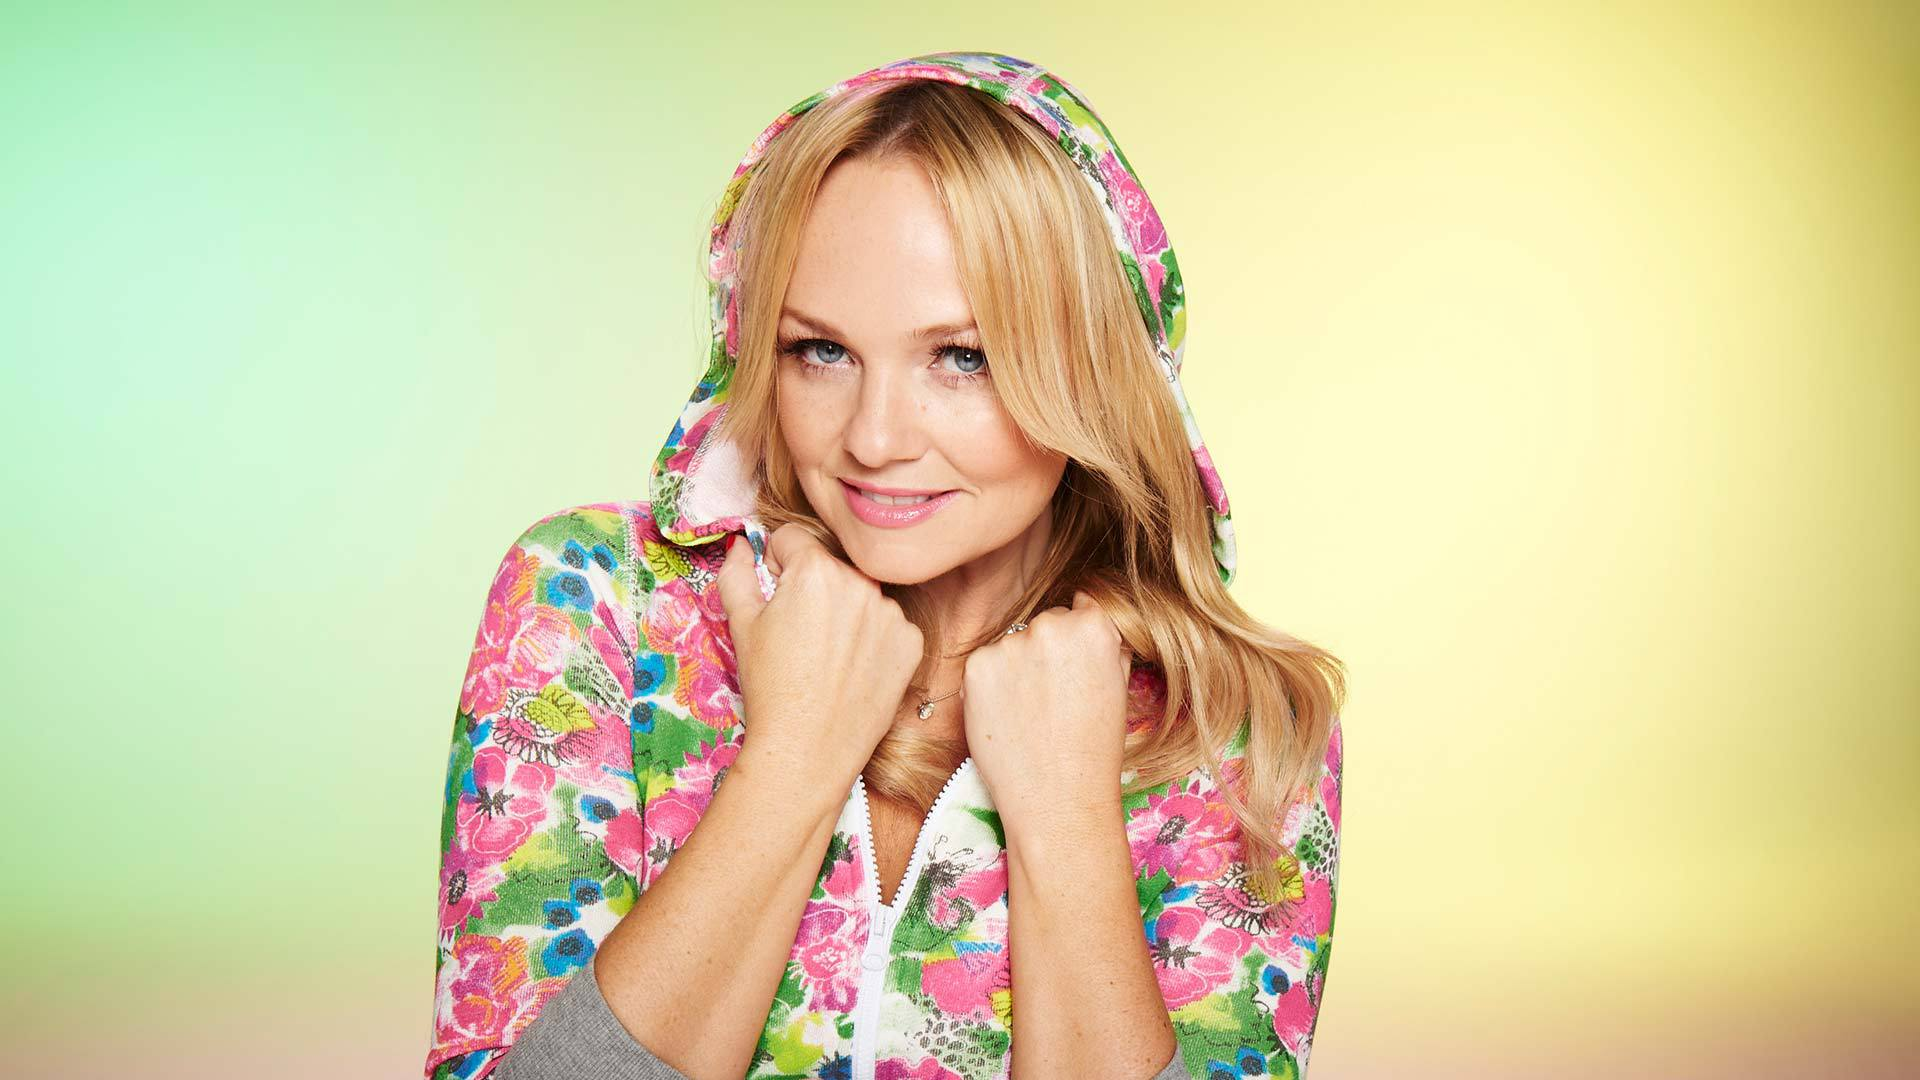 emma bunton wallpapers archives. Black Bedroom Furniture Sets. Home Design Ideas